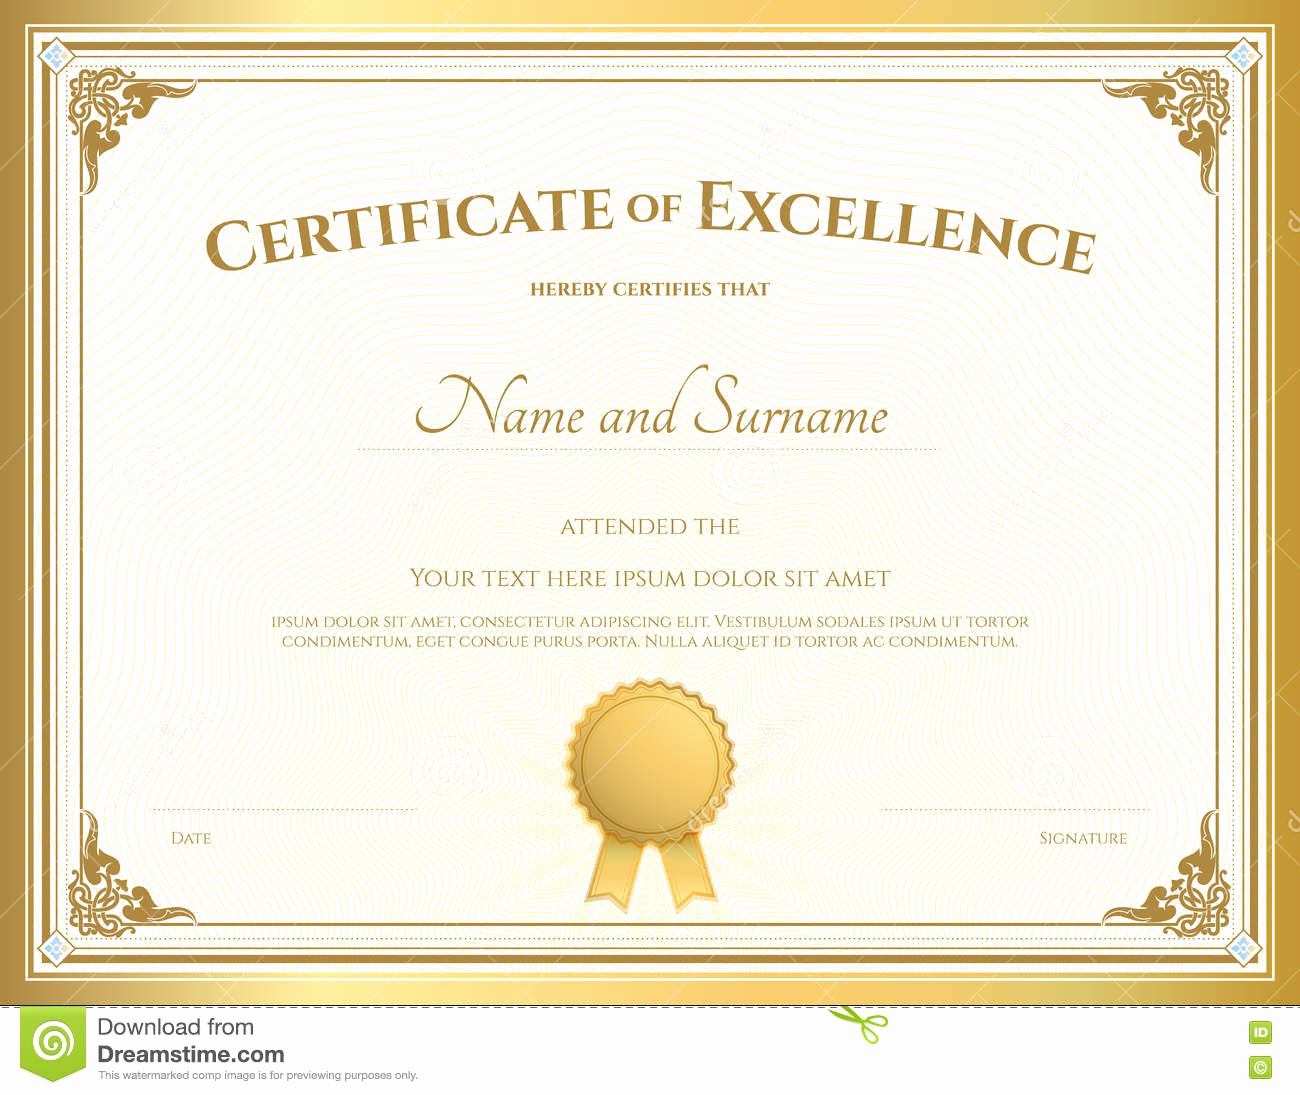 Certificate Of Excellence Template Best Of Certificate Excellence Template with Gold Border Stock